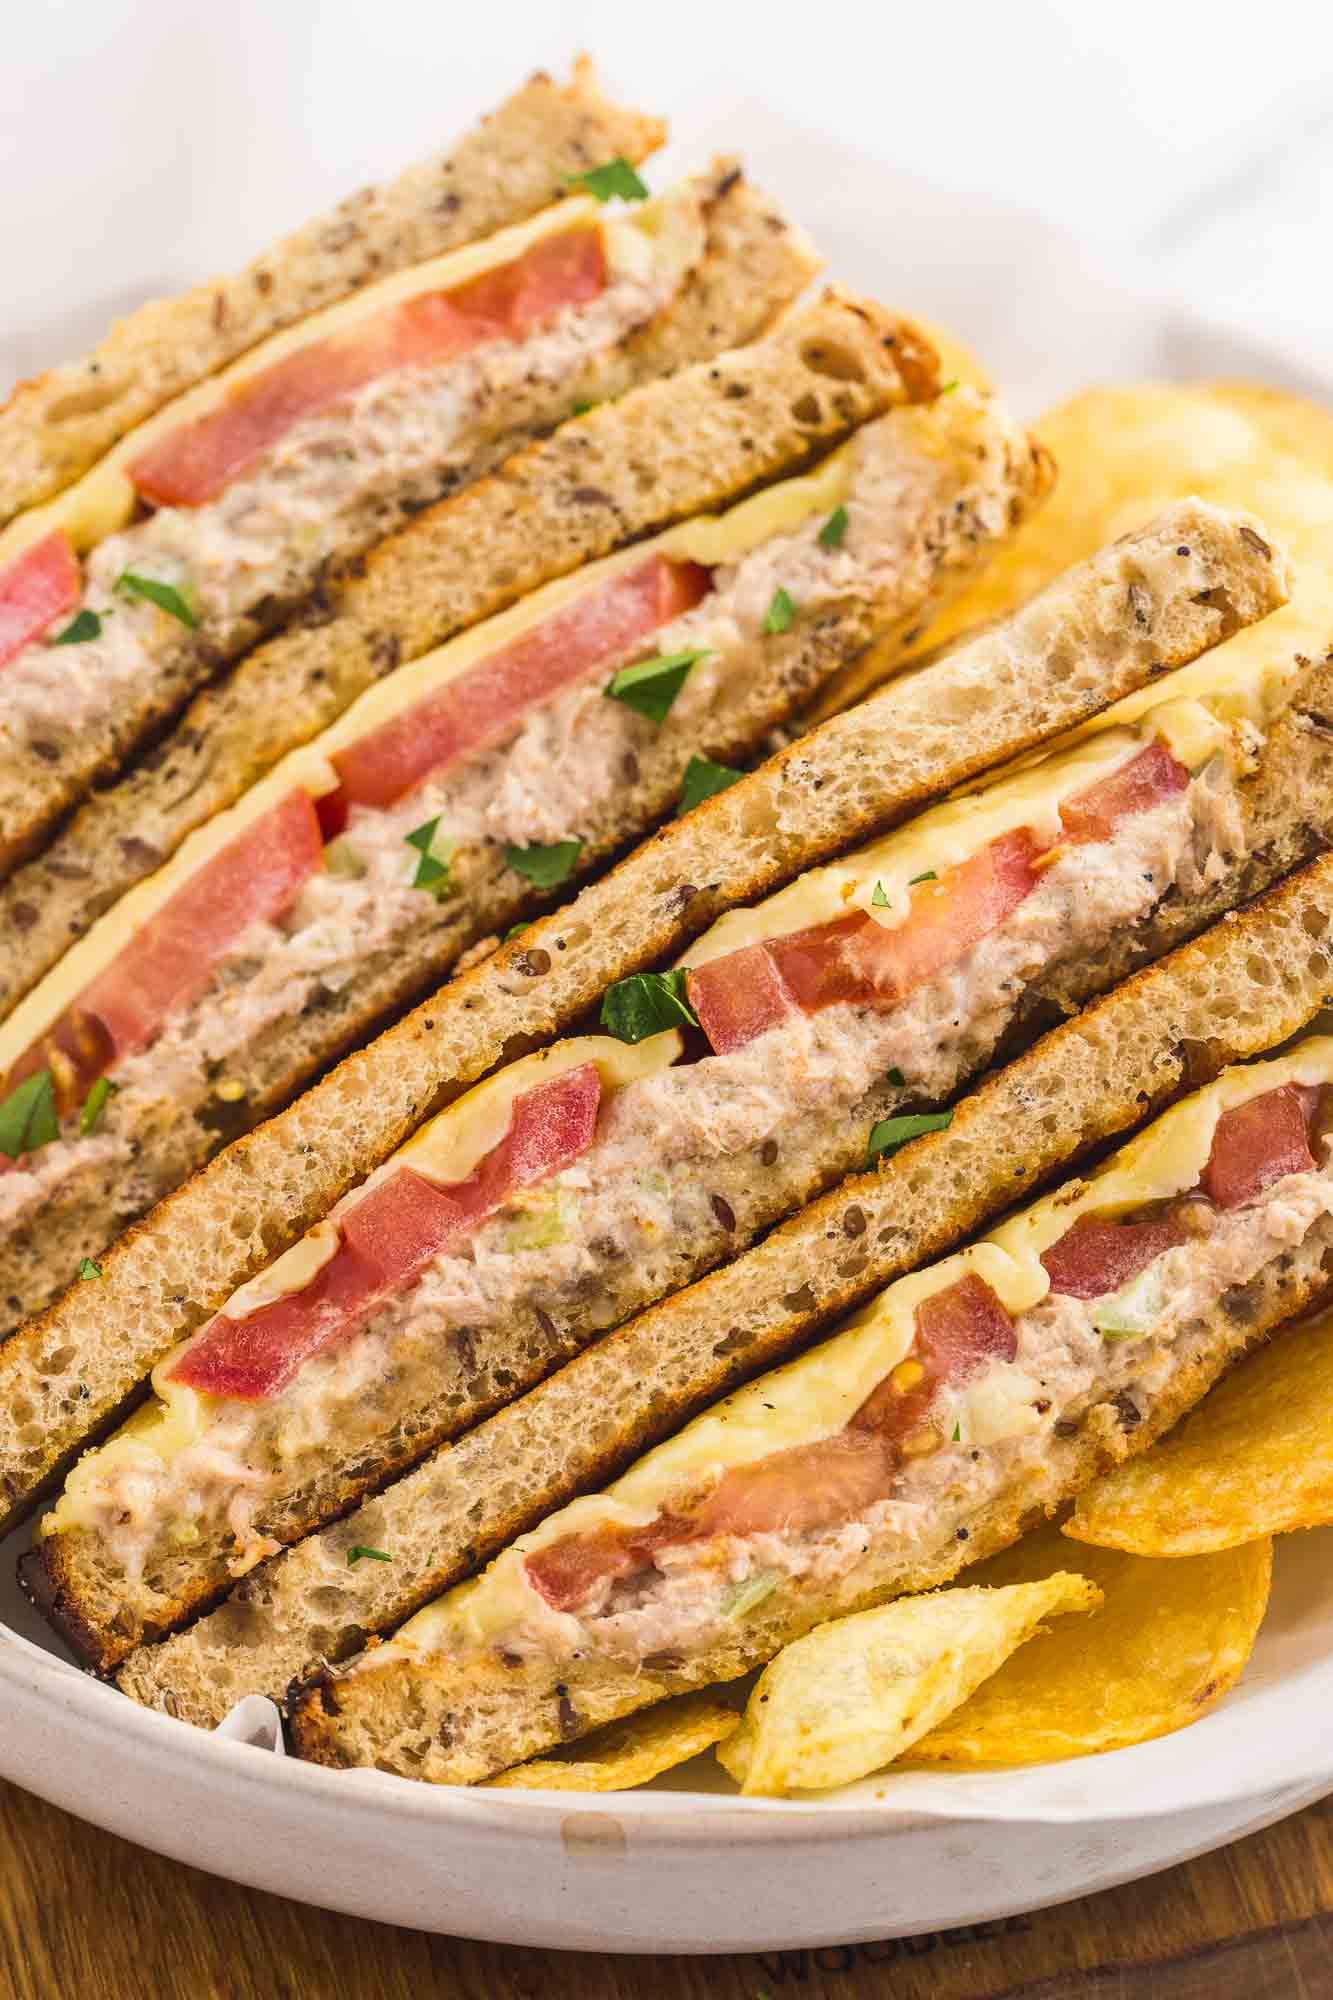 Stacked tuna melt sandwiches on a white plate